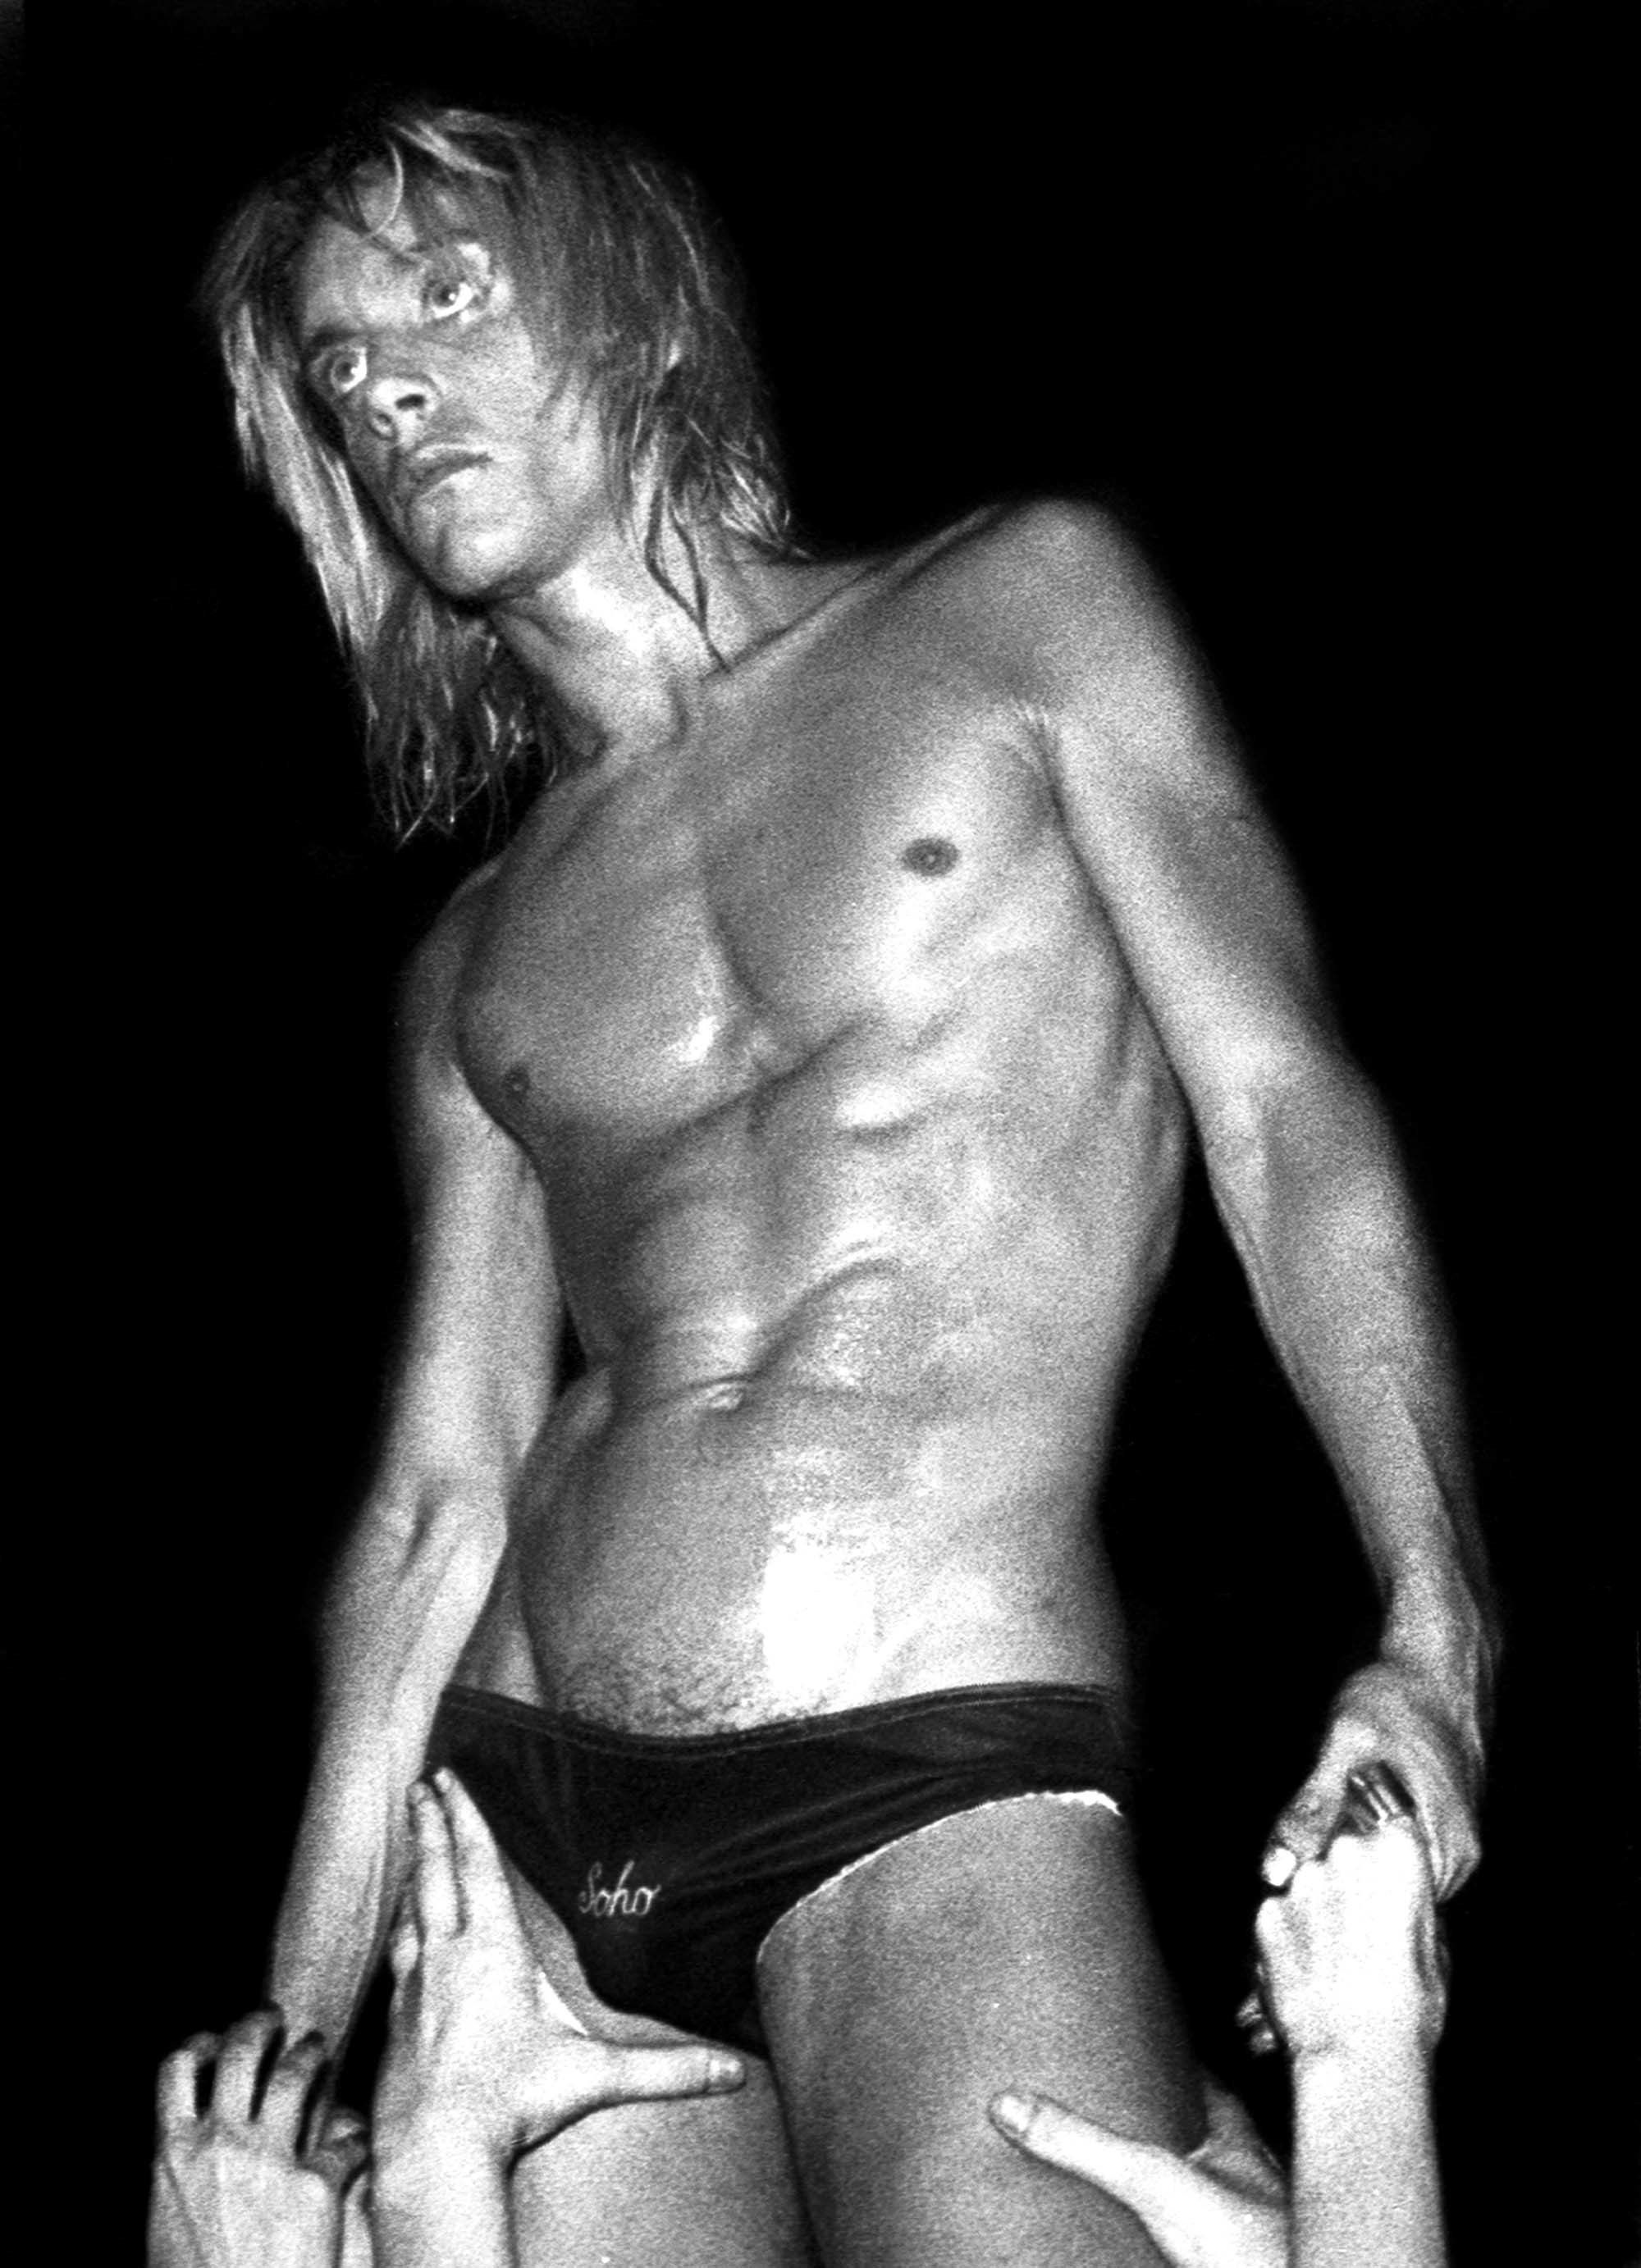 Iggy pop naked pic — 10